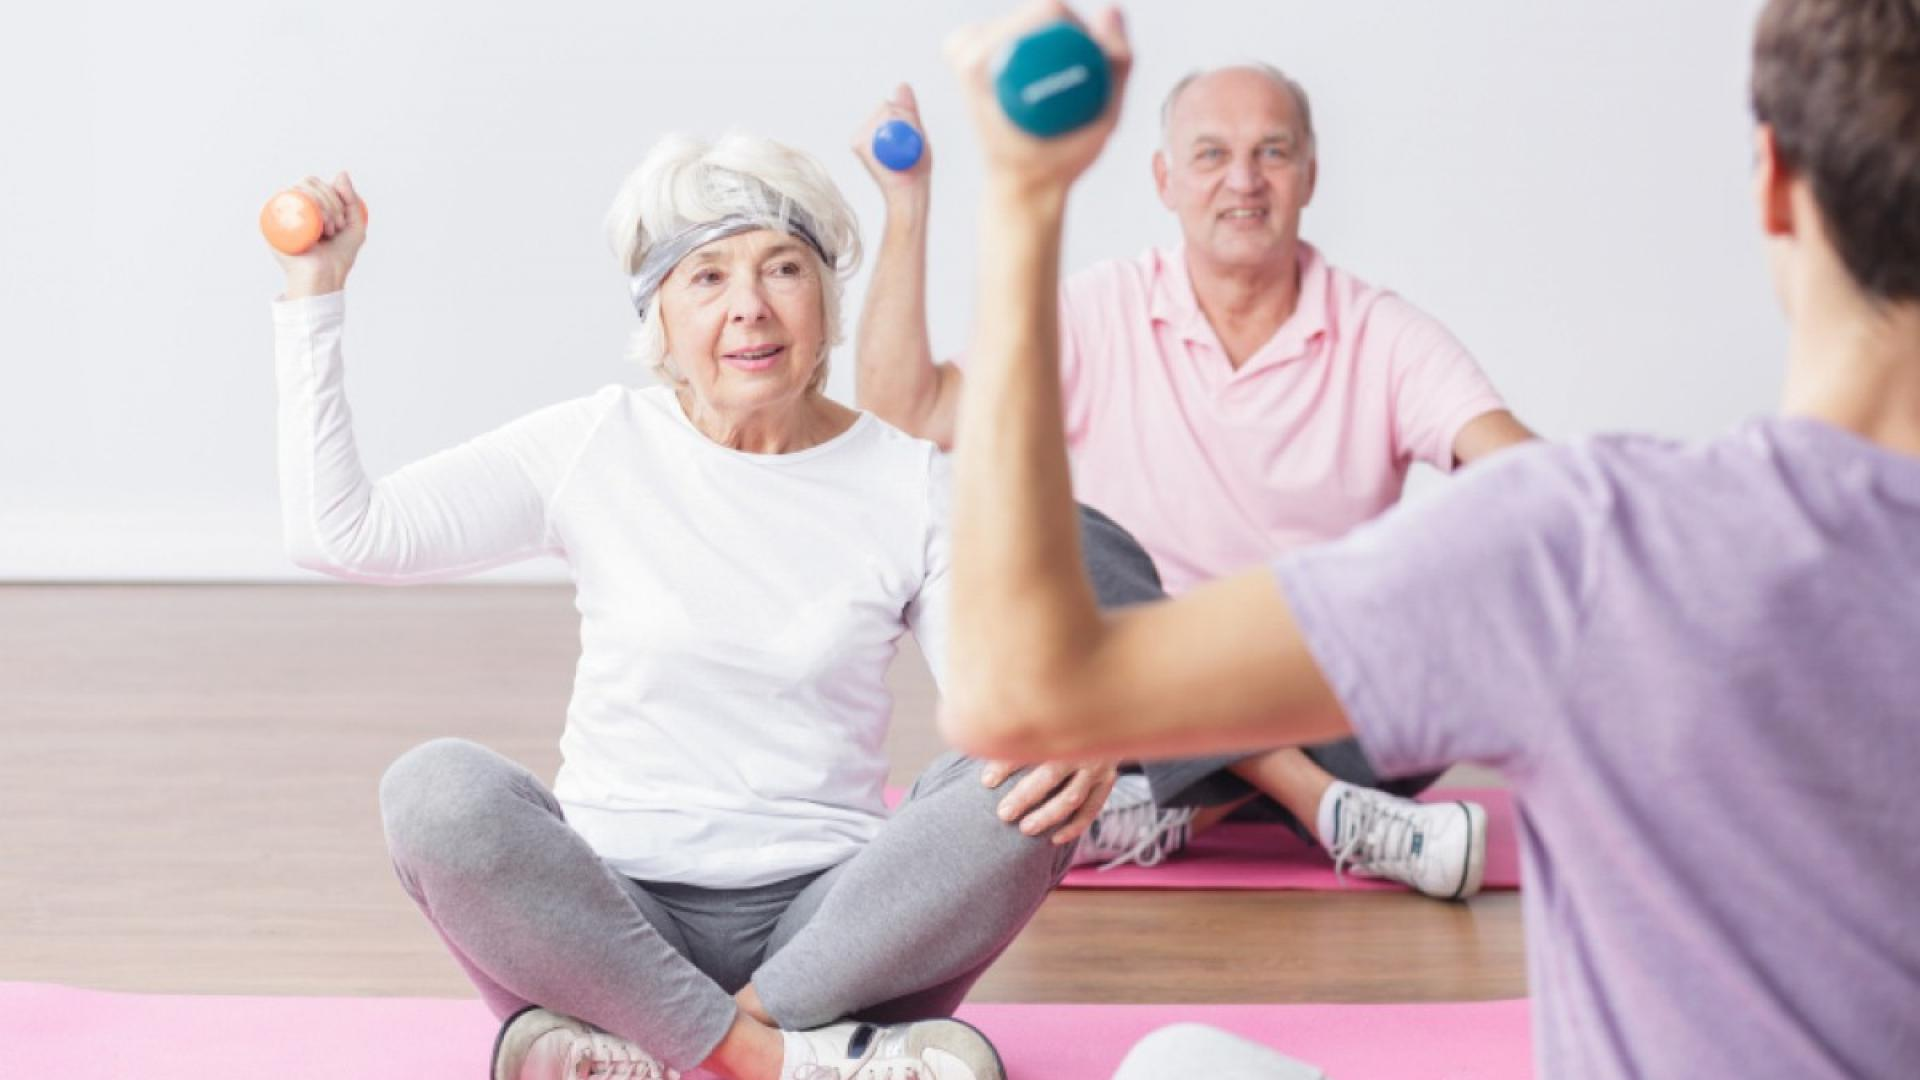 Physios could lessen work for GPs